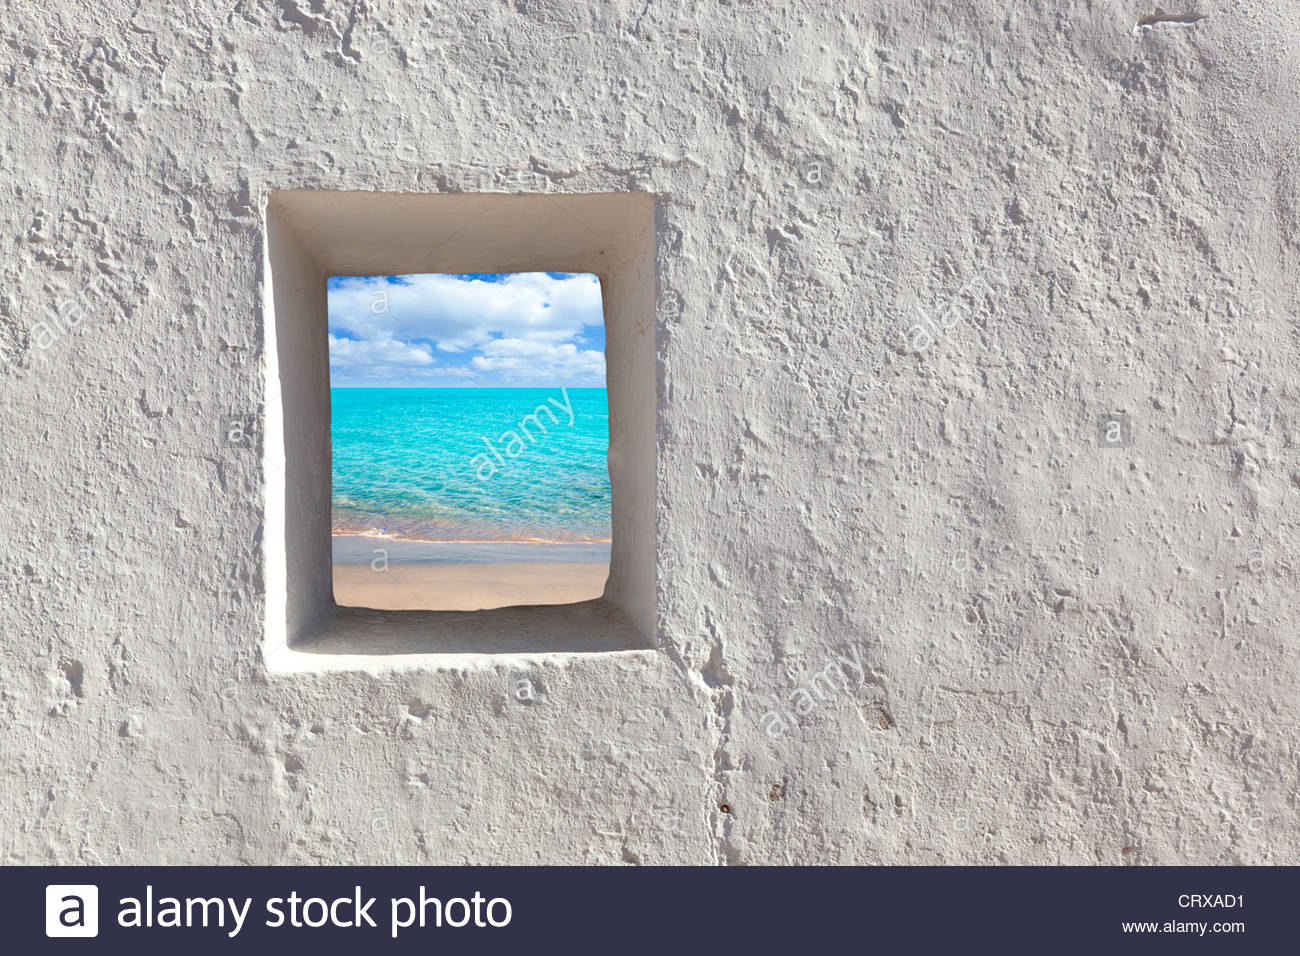 Balearic islands idyllic turquoise beach view through whitewashed house open door - Stock Image